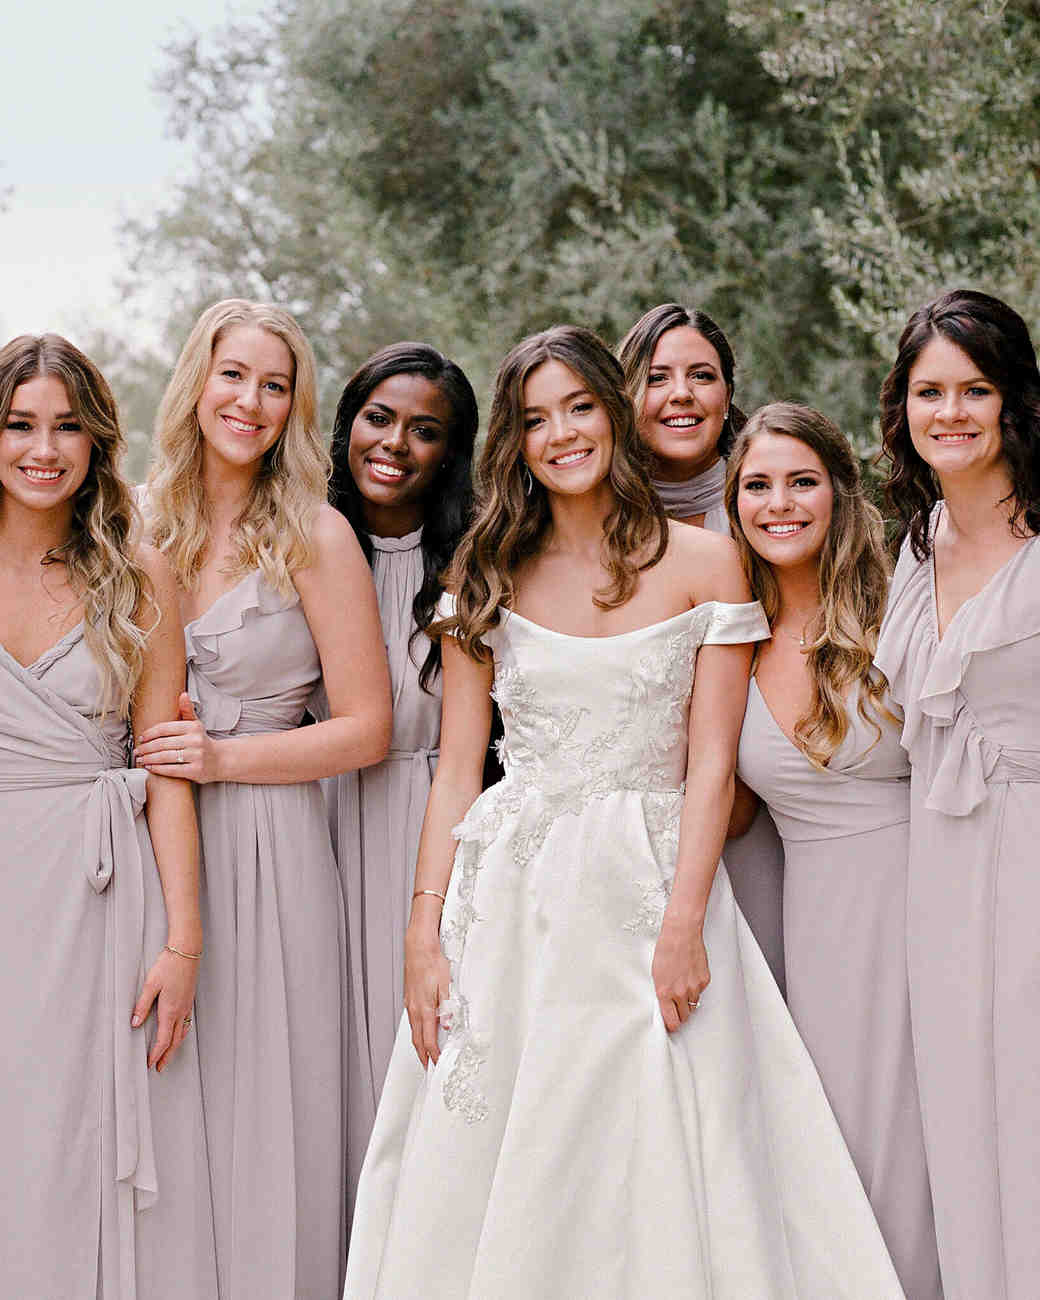 kelsey joc wedding santa barbara california bridesmaids aadf2618